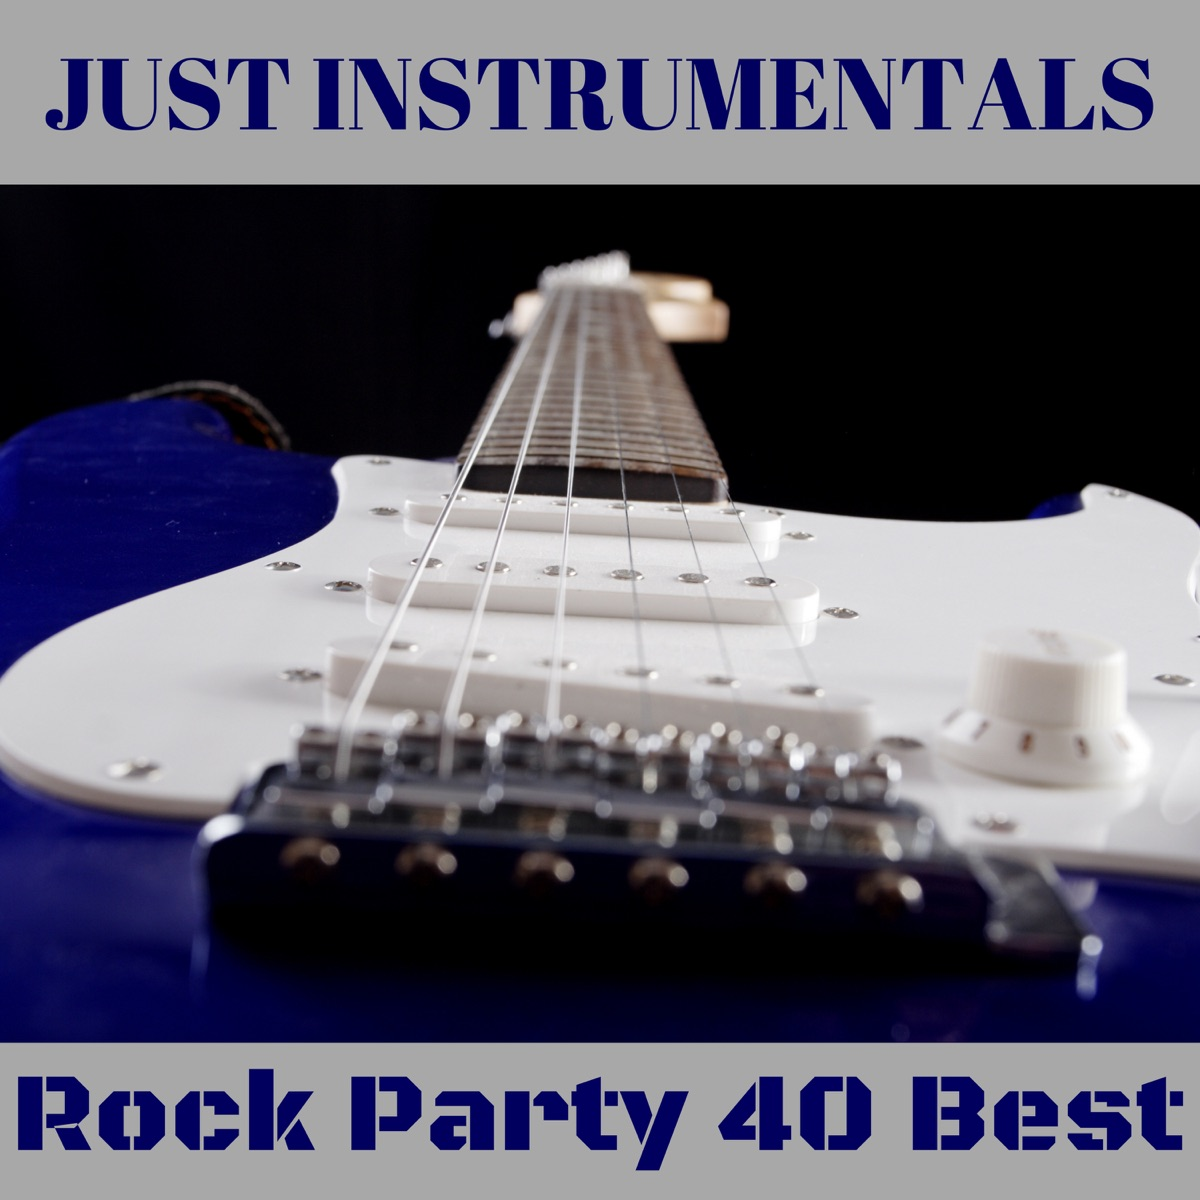 Rock Party 40 Best Just Instrumentals Wicker Hans CD cover